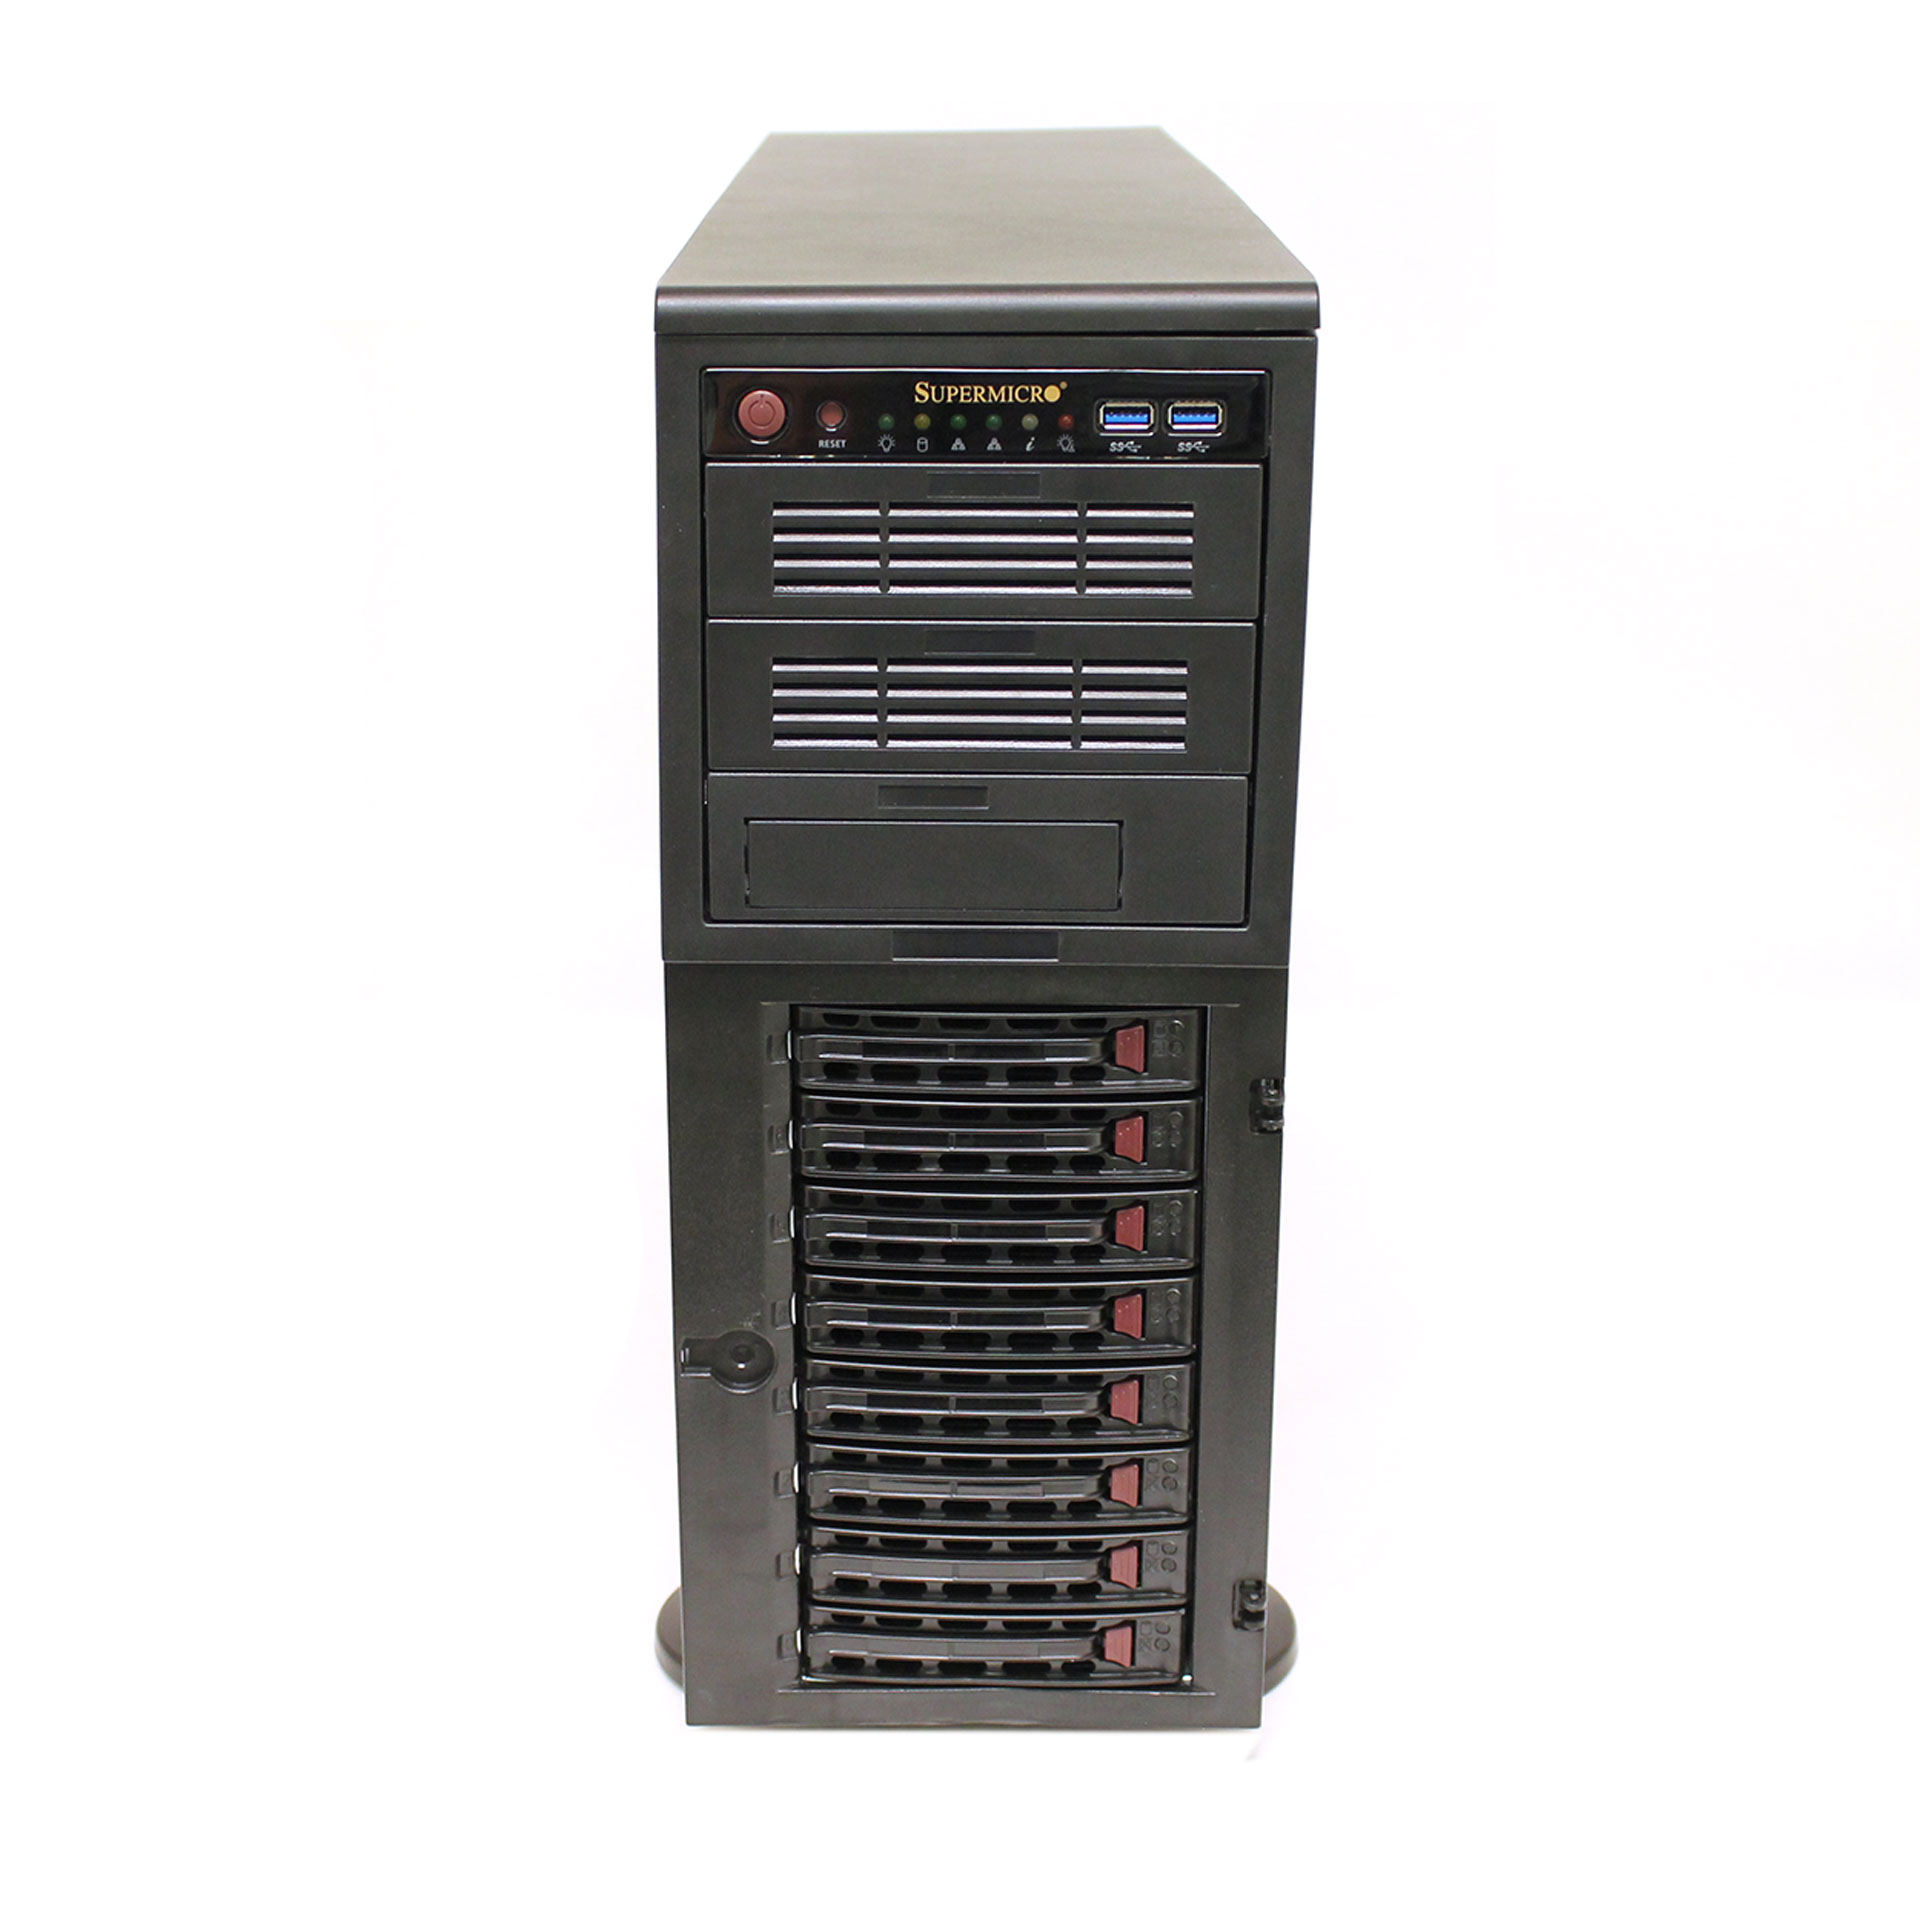 Supermicro SuperWorkstation No CPU/RAM/HDD Model:743-12, 7048A-T